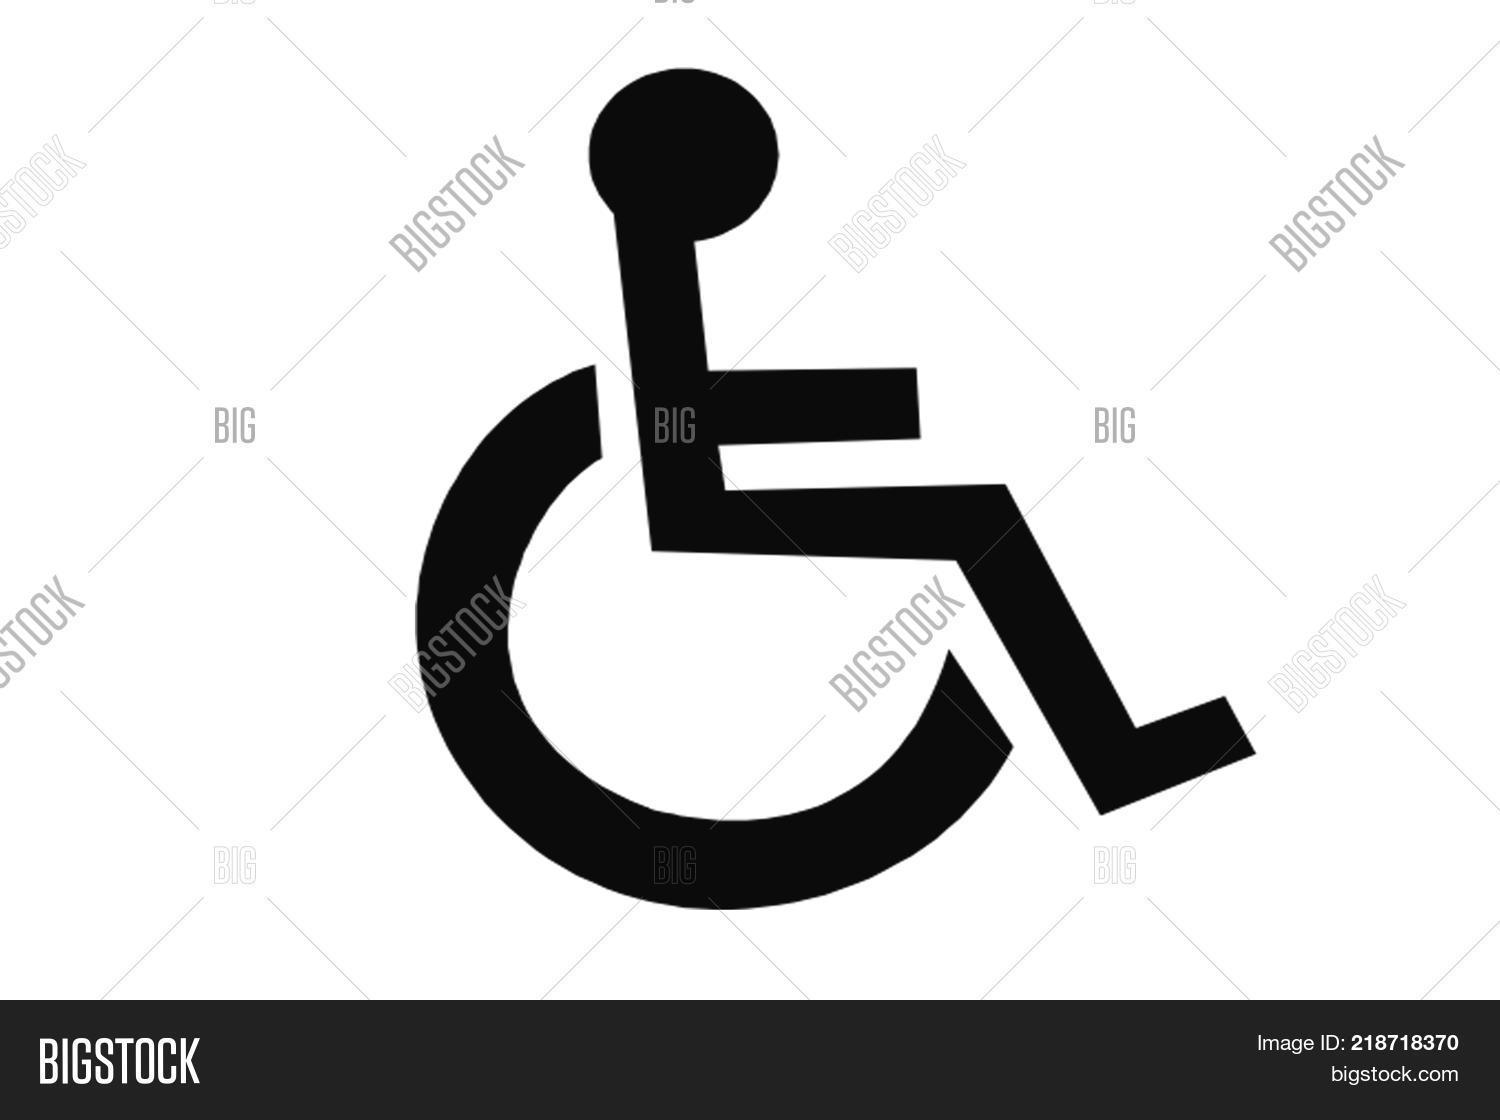 Disability Disabled Image Photo Free Trial Bigstock